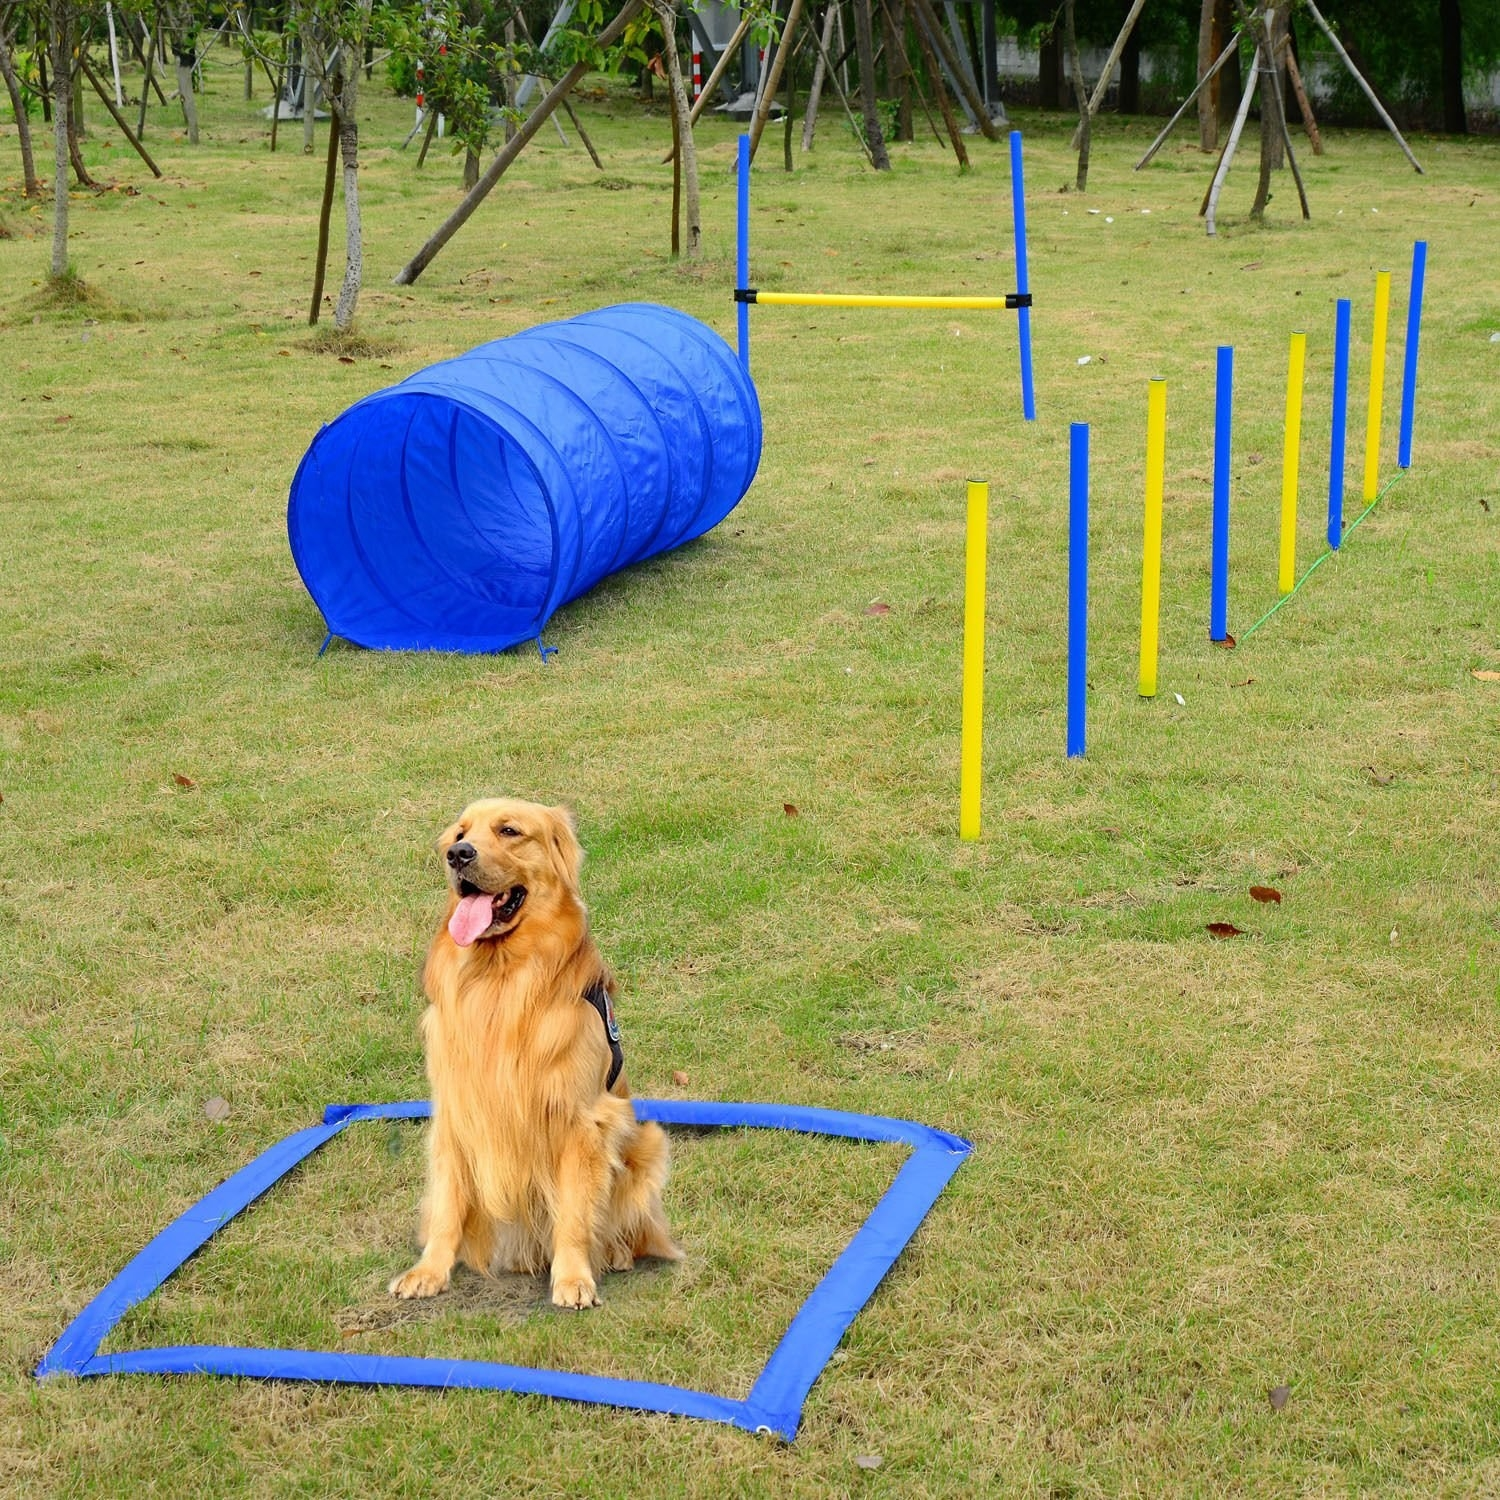 Product photo showing a golden retriever using the agility course